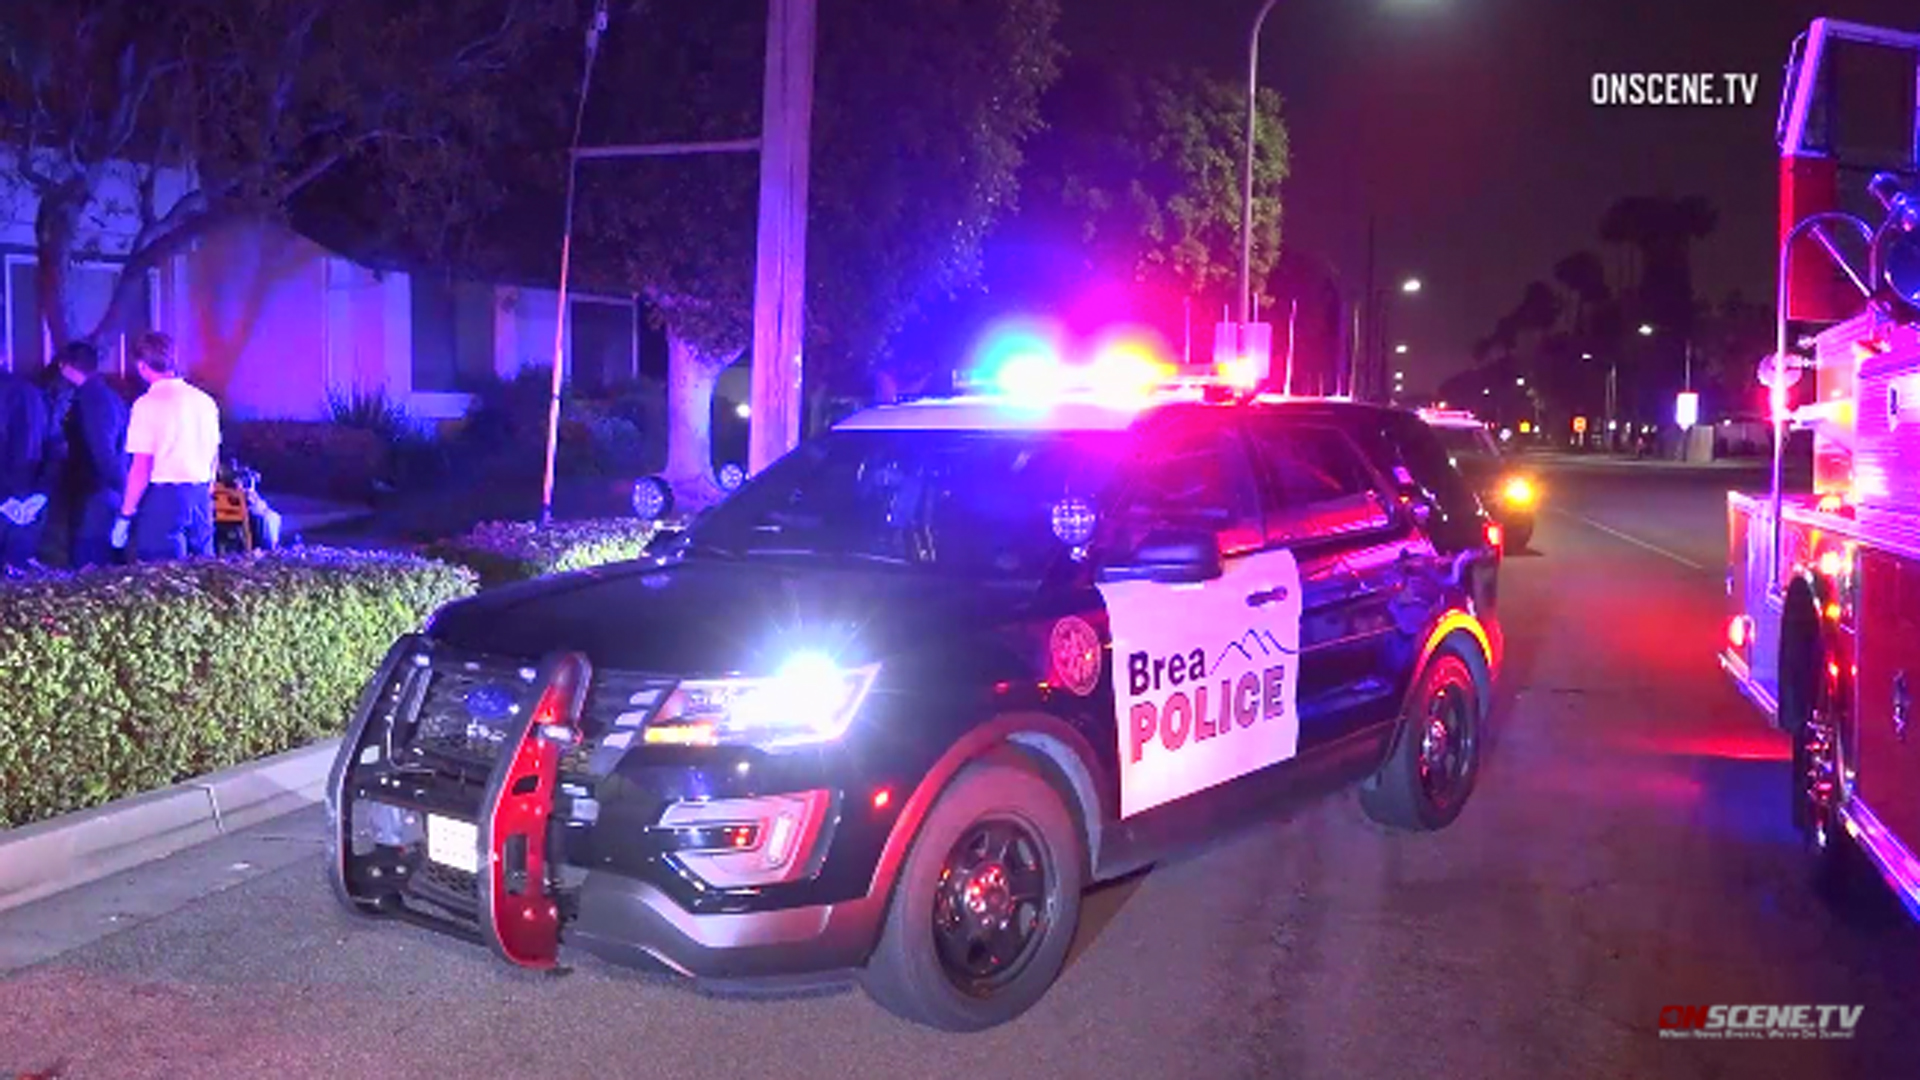 Police investigate a domestic disturbance in Brea on April 22, 2019. (Credit: OnScene.TV)